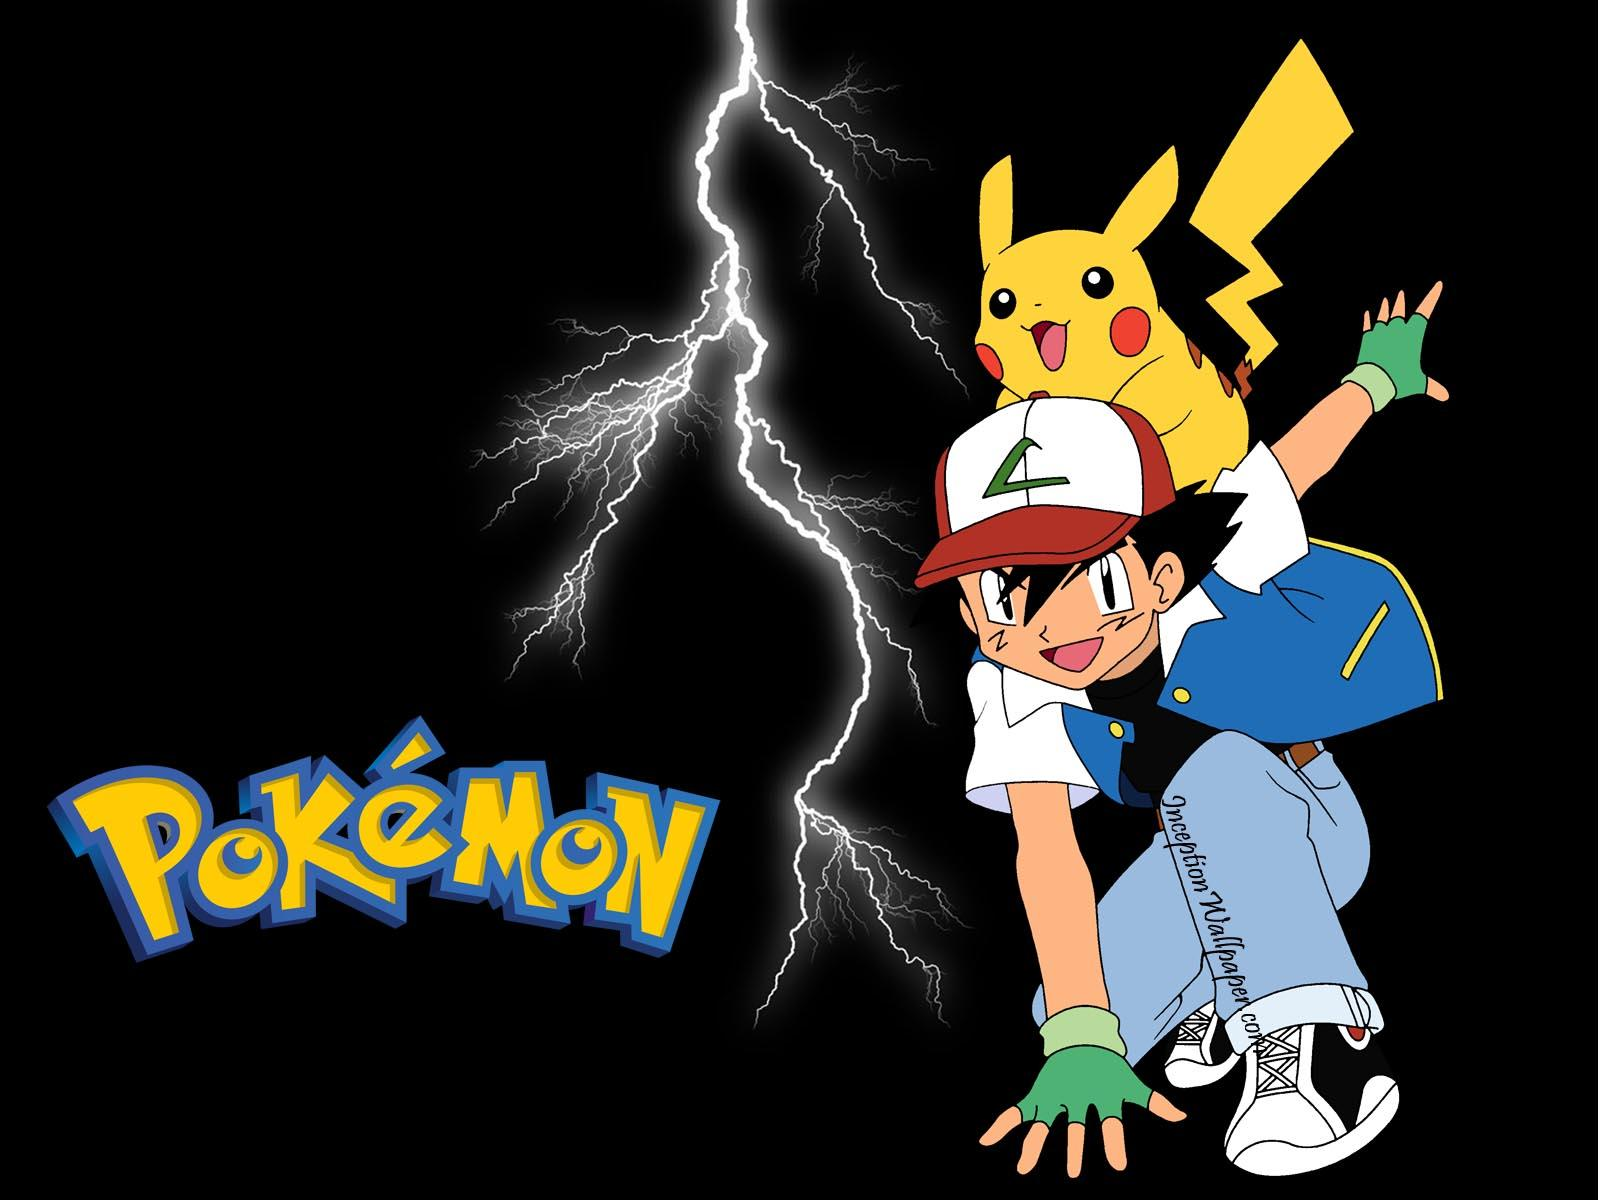 Wallpaper download pokemon - Download Pokemon Ash Pikachu Sobre Raios Papel Parede Wallpaper